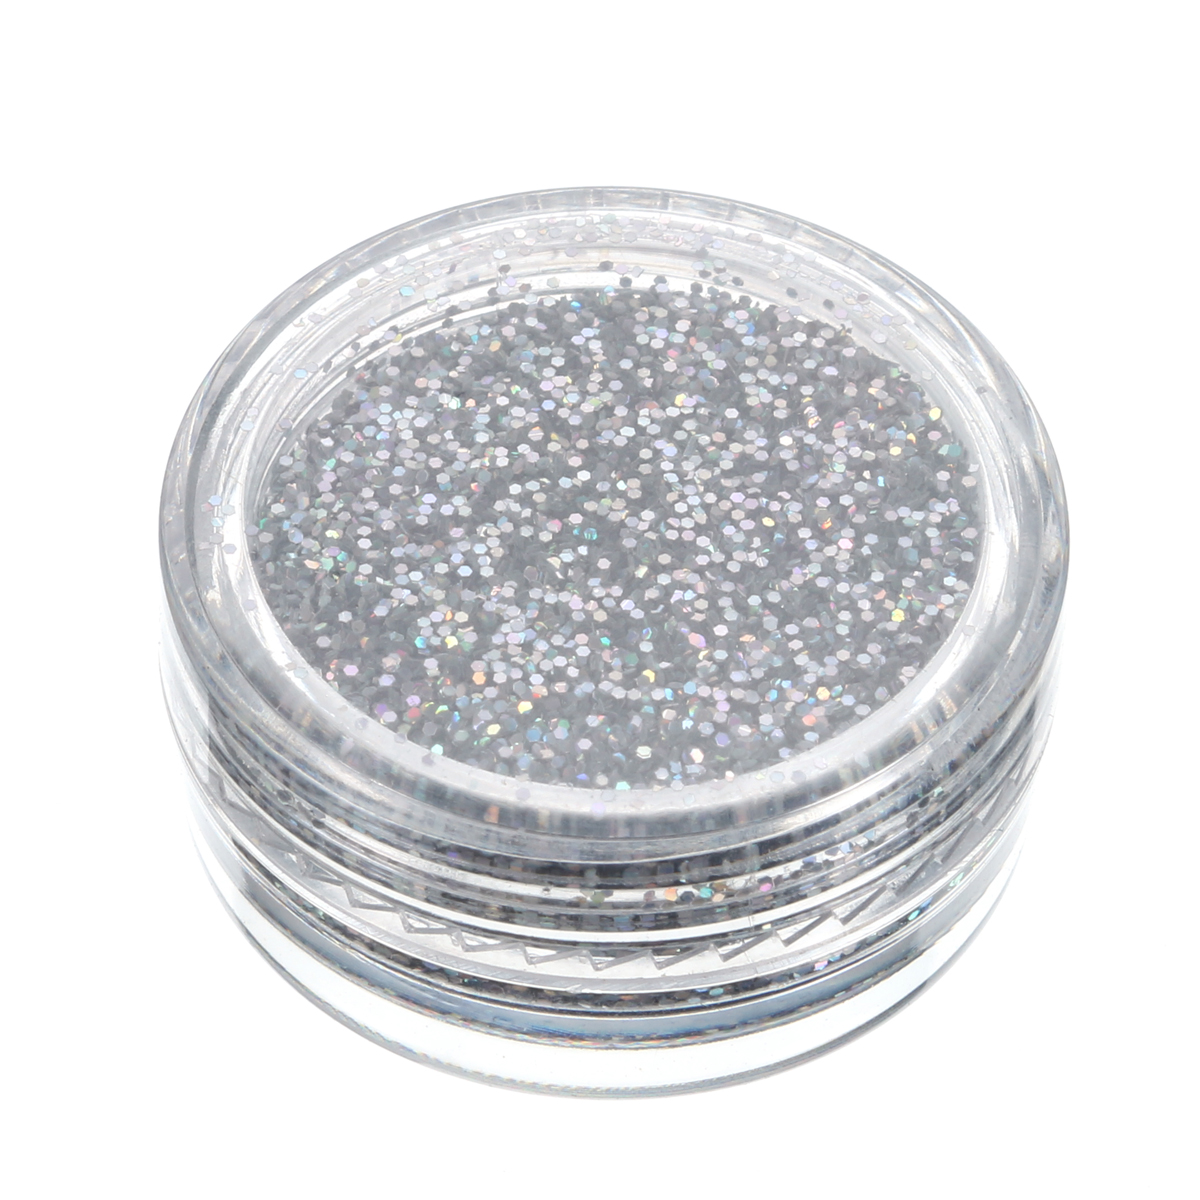 Sparkly Makeup Glitter Loose Powder Silver Eyeshadow Pigment Fix Gel Kit